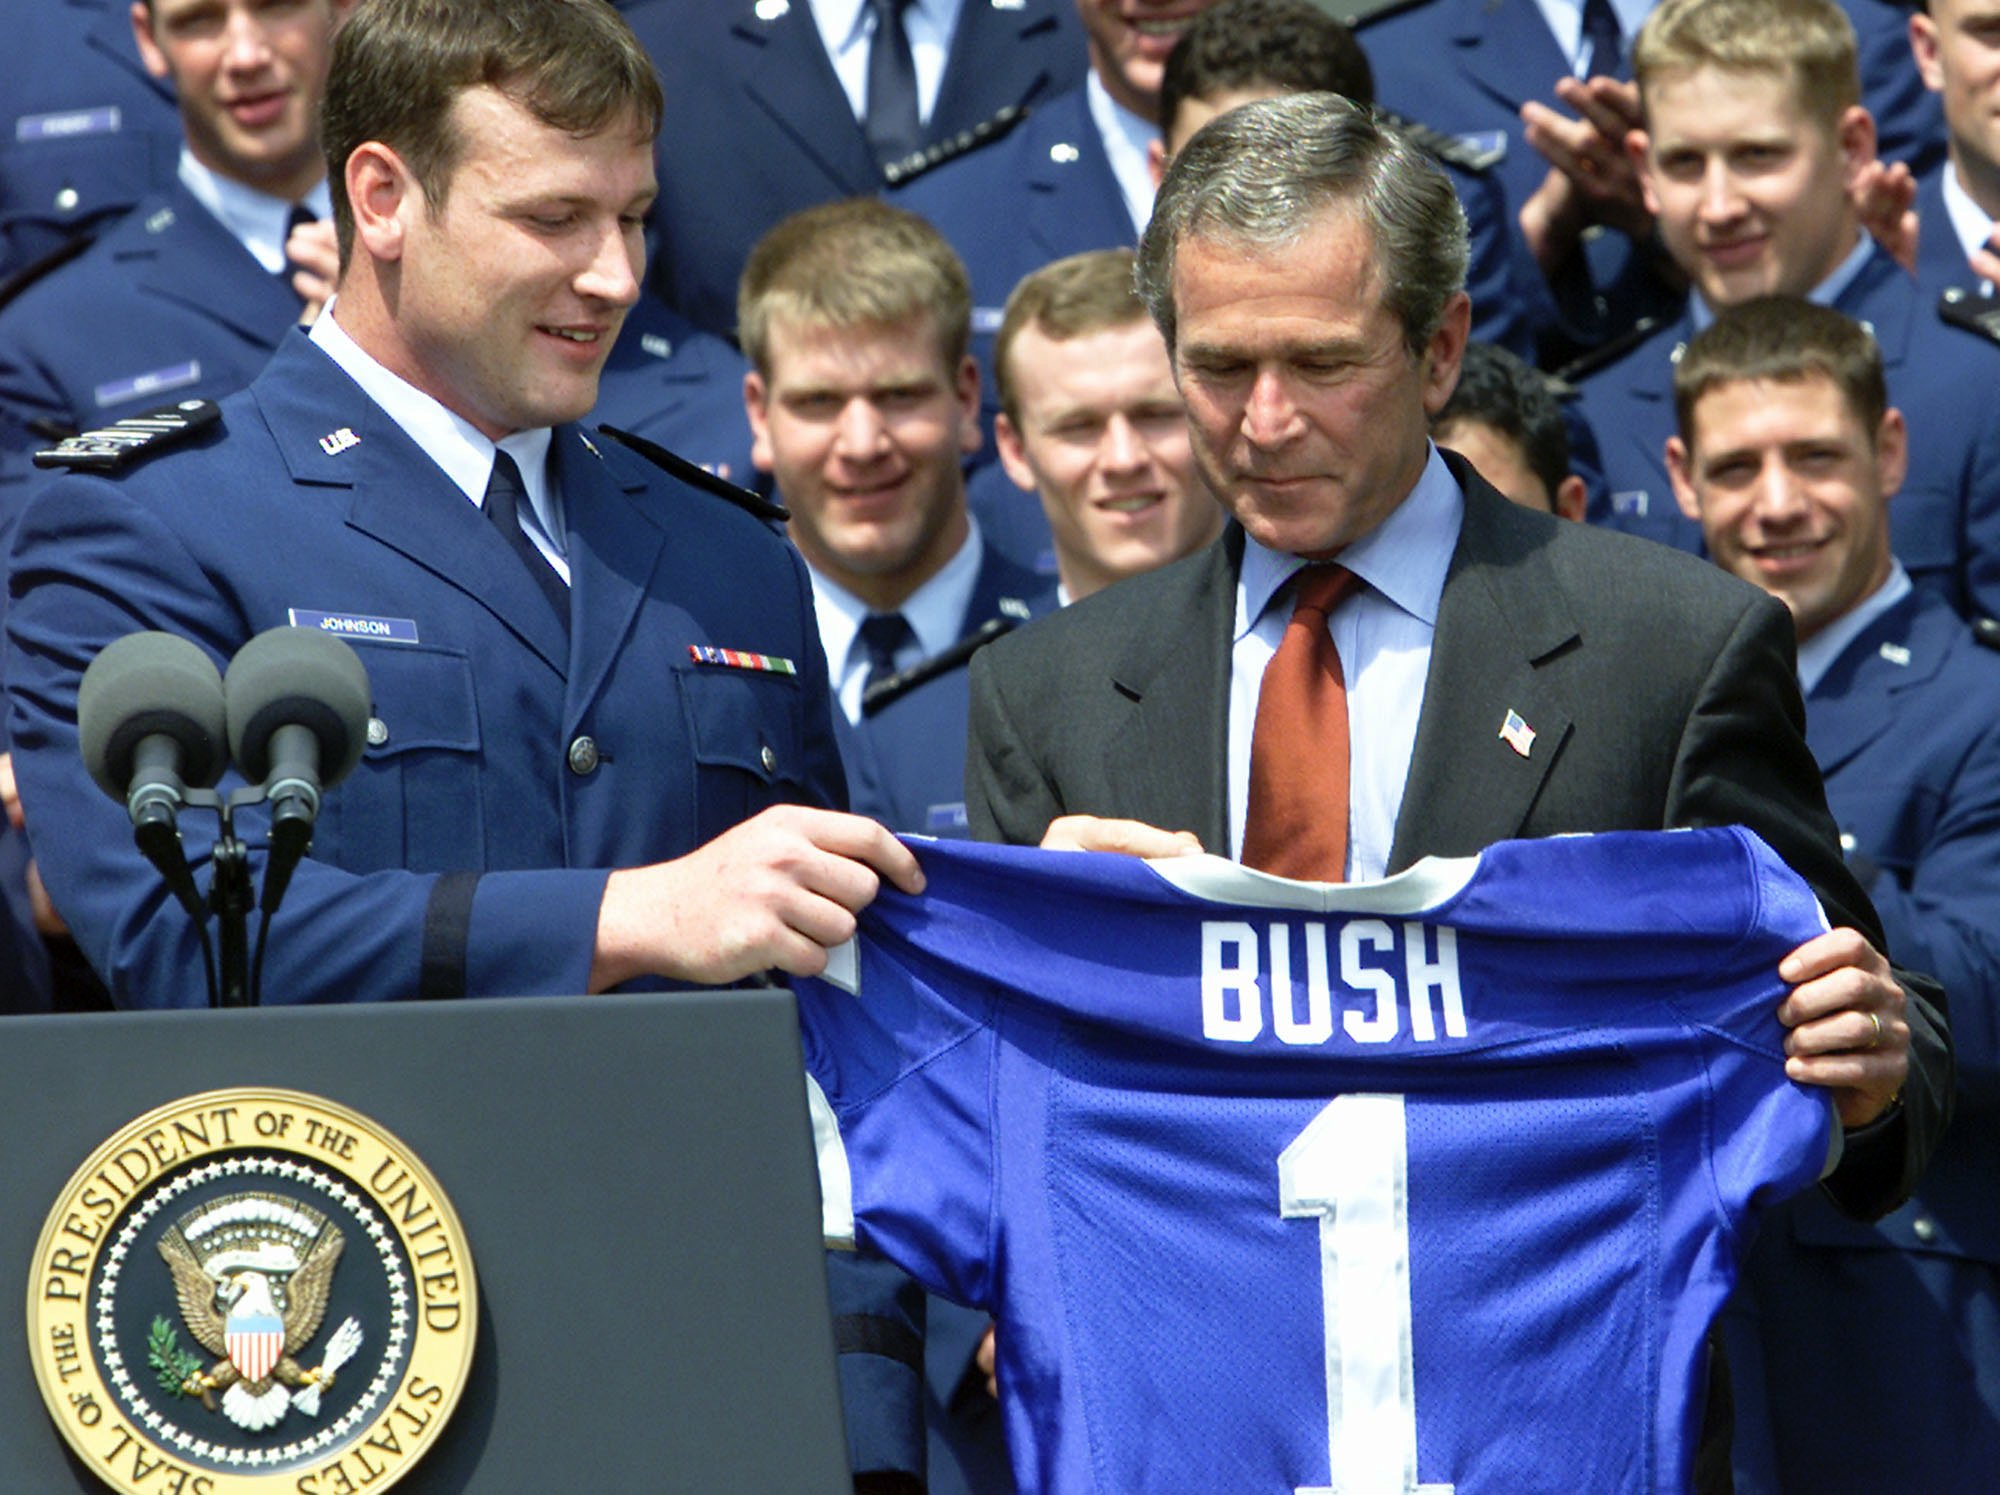 President Bush receives an Air Force football jersey from cadet Zack Johnson of Junction City, Ore., during the presentation of the Commander-in-Chief's Trophy to the the U.S. Air Force Academy football team in the Rose Garden, at the White House Friday, May 17, 2002. (AP Photo/Rick Bowmer)